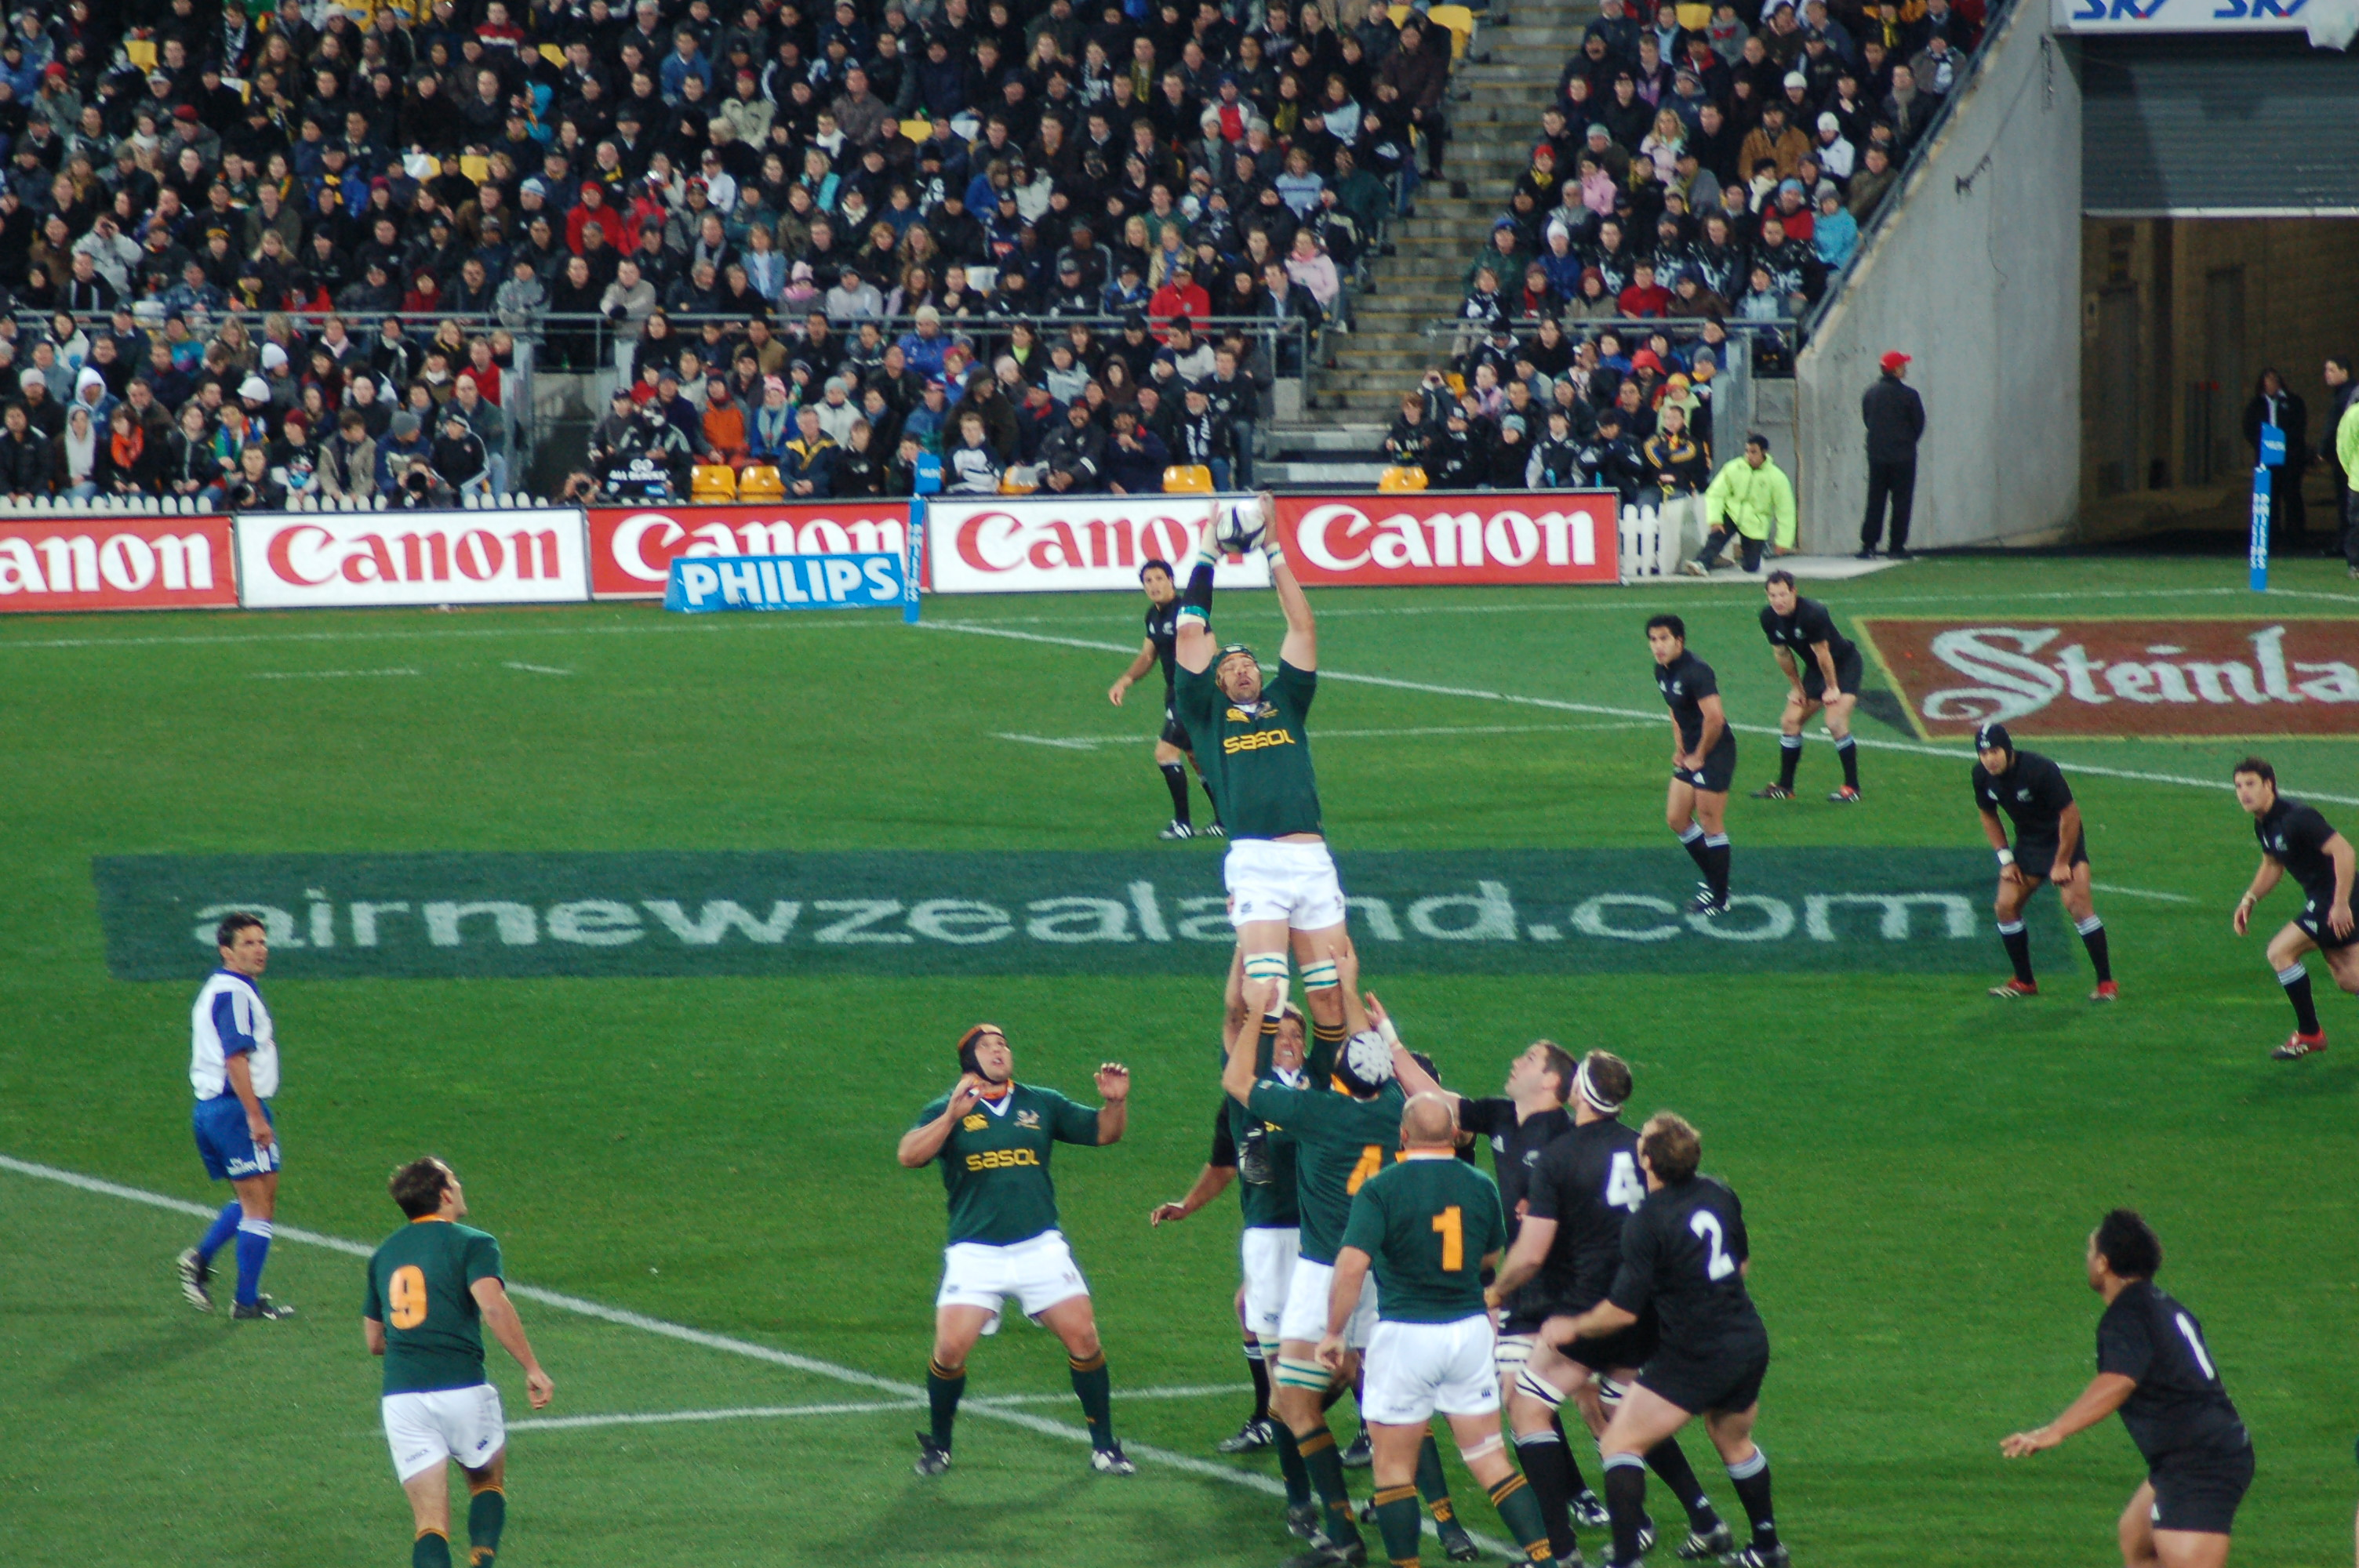 394c3a2ba52 Rugby union - Wikipedia